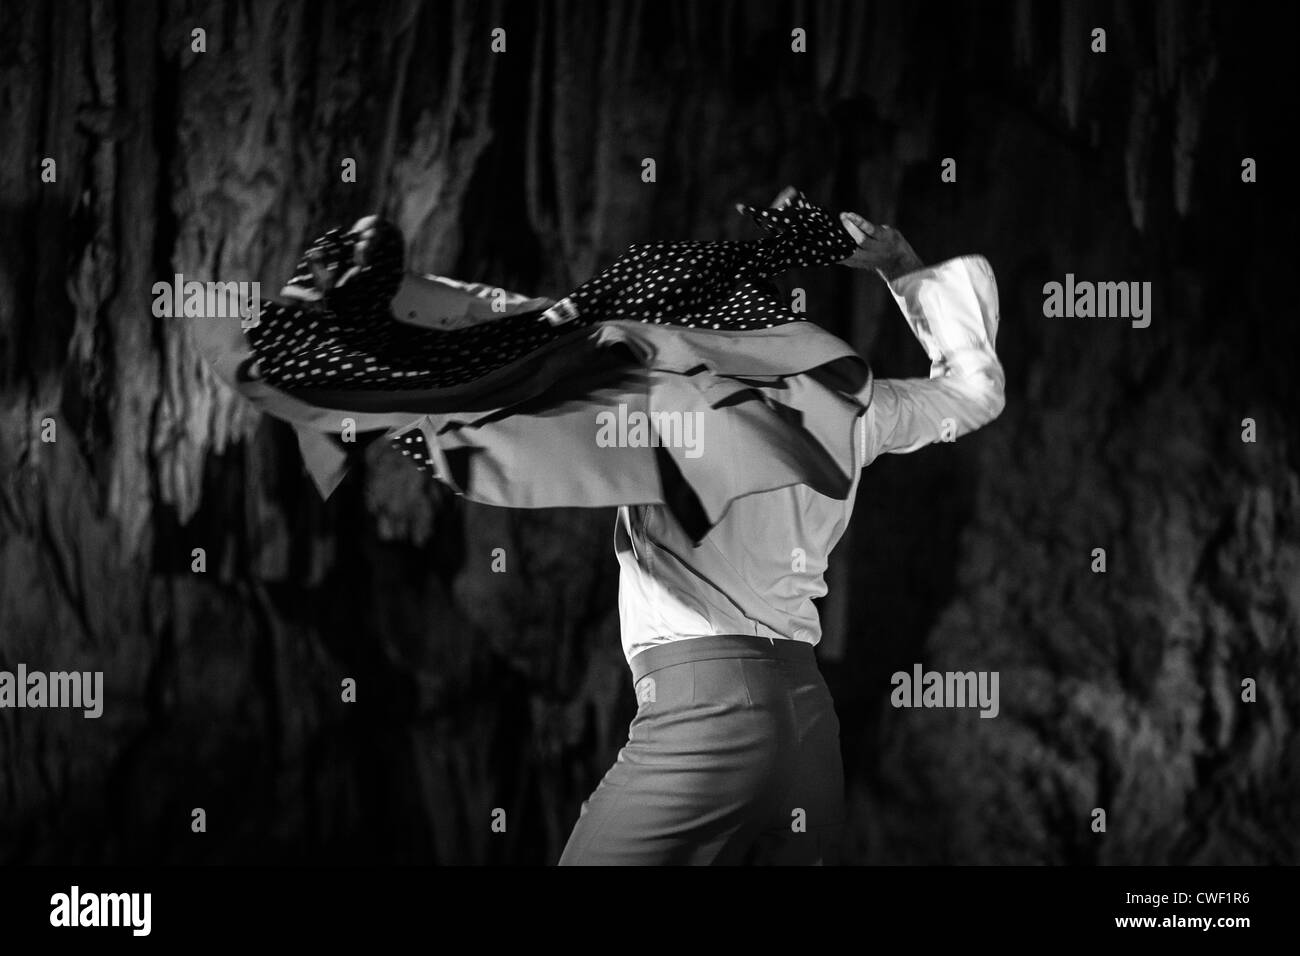 Flamenco dancers from the Antonio El Pipa dance collective put on a show in the Nerja caves in Spain in 2012. - Stock Image